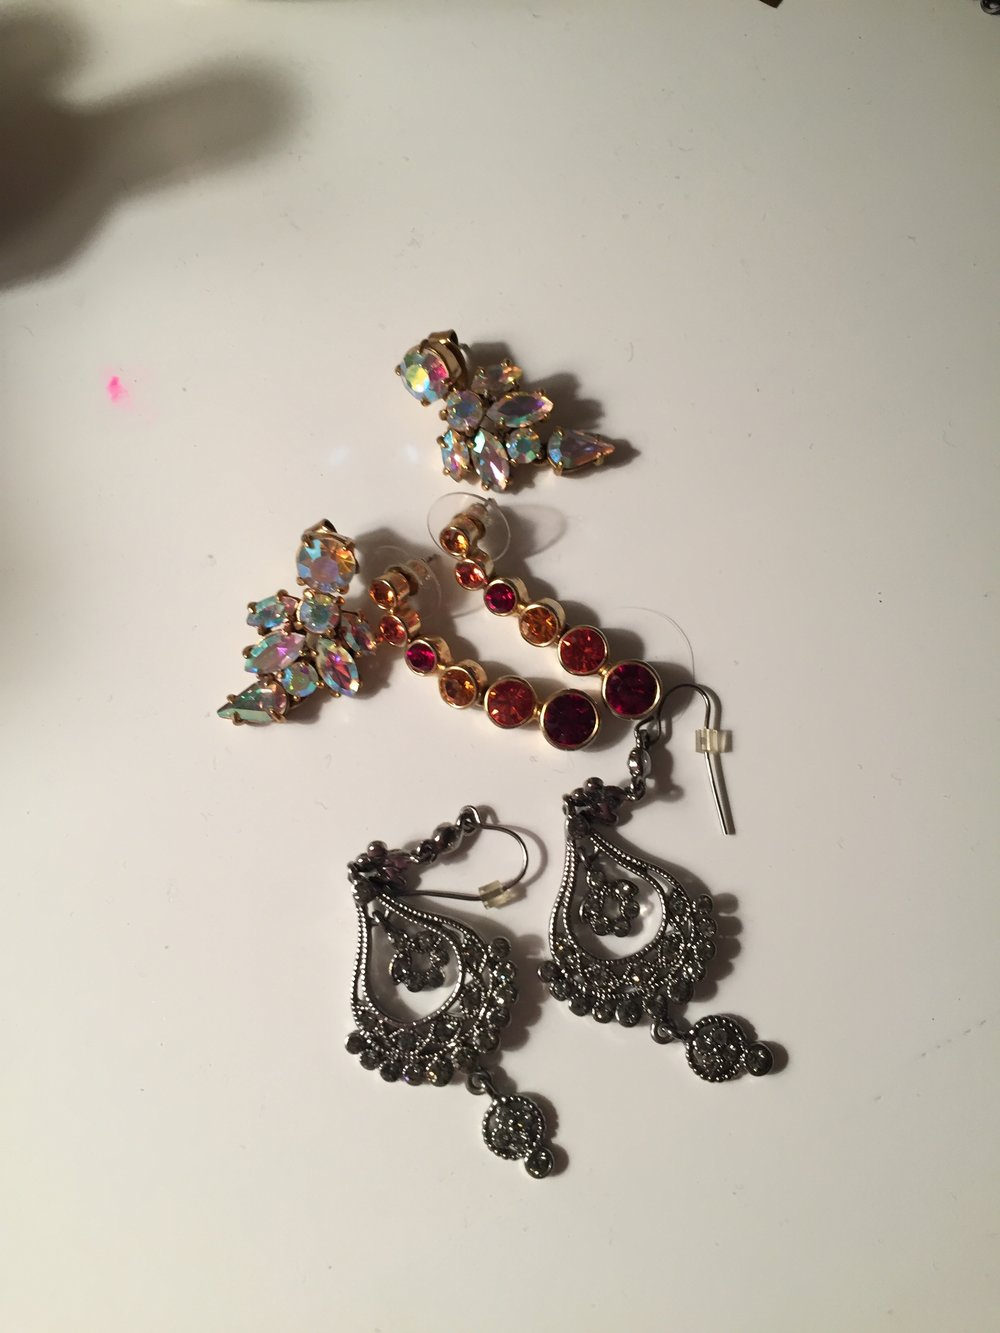 A better look at the earrings I wore--the middle pair. The top is J.Crew, the middle and bottom are Touchstone Crystal. These are my earrings, but Stitch Fix does also style jewelry!